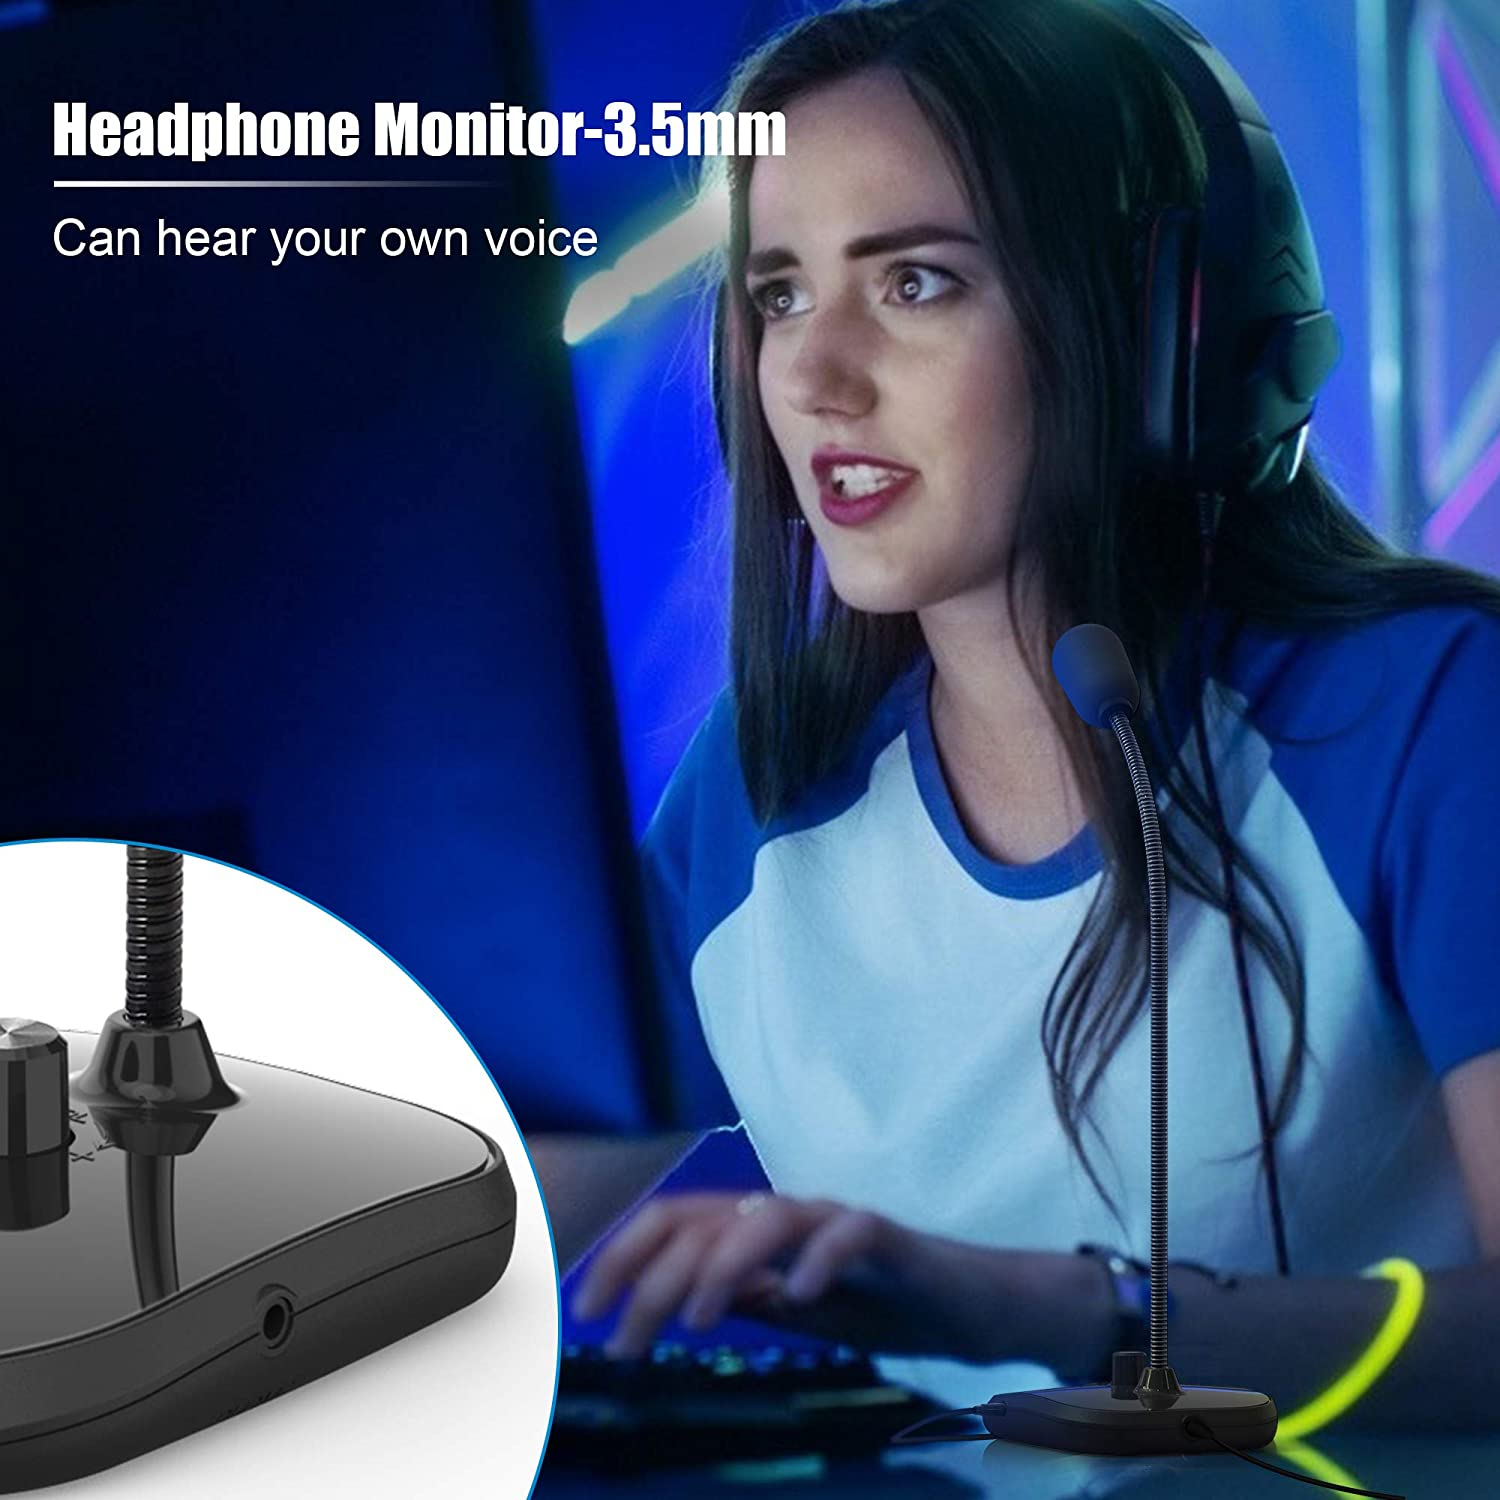 Laptop PC zoom Mac, Windows LED Indicator Streaming USB Desktop Microphone online class Plug/&Play for Computer Mac Recording Condenser PC Mic with Headphone Jack PS4 Voice Video Conference